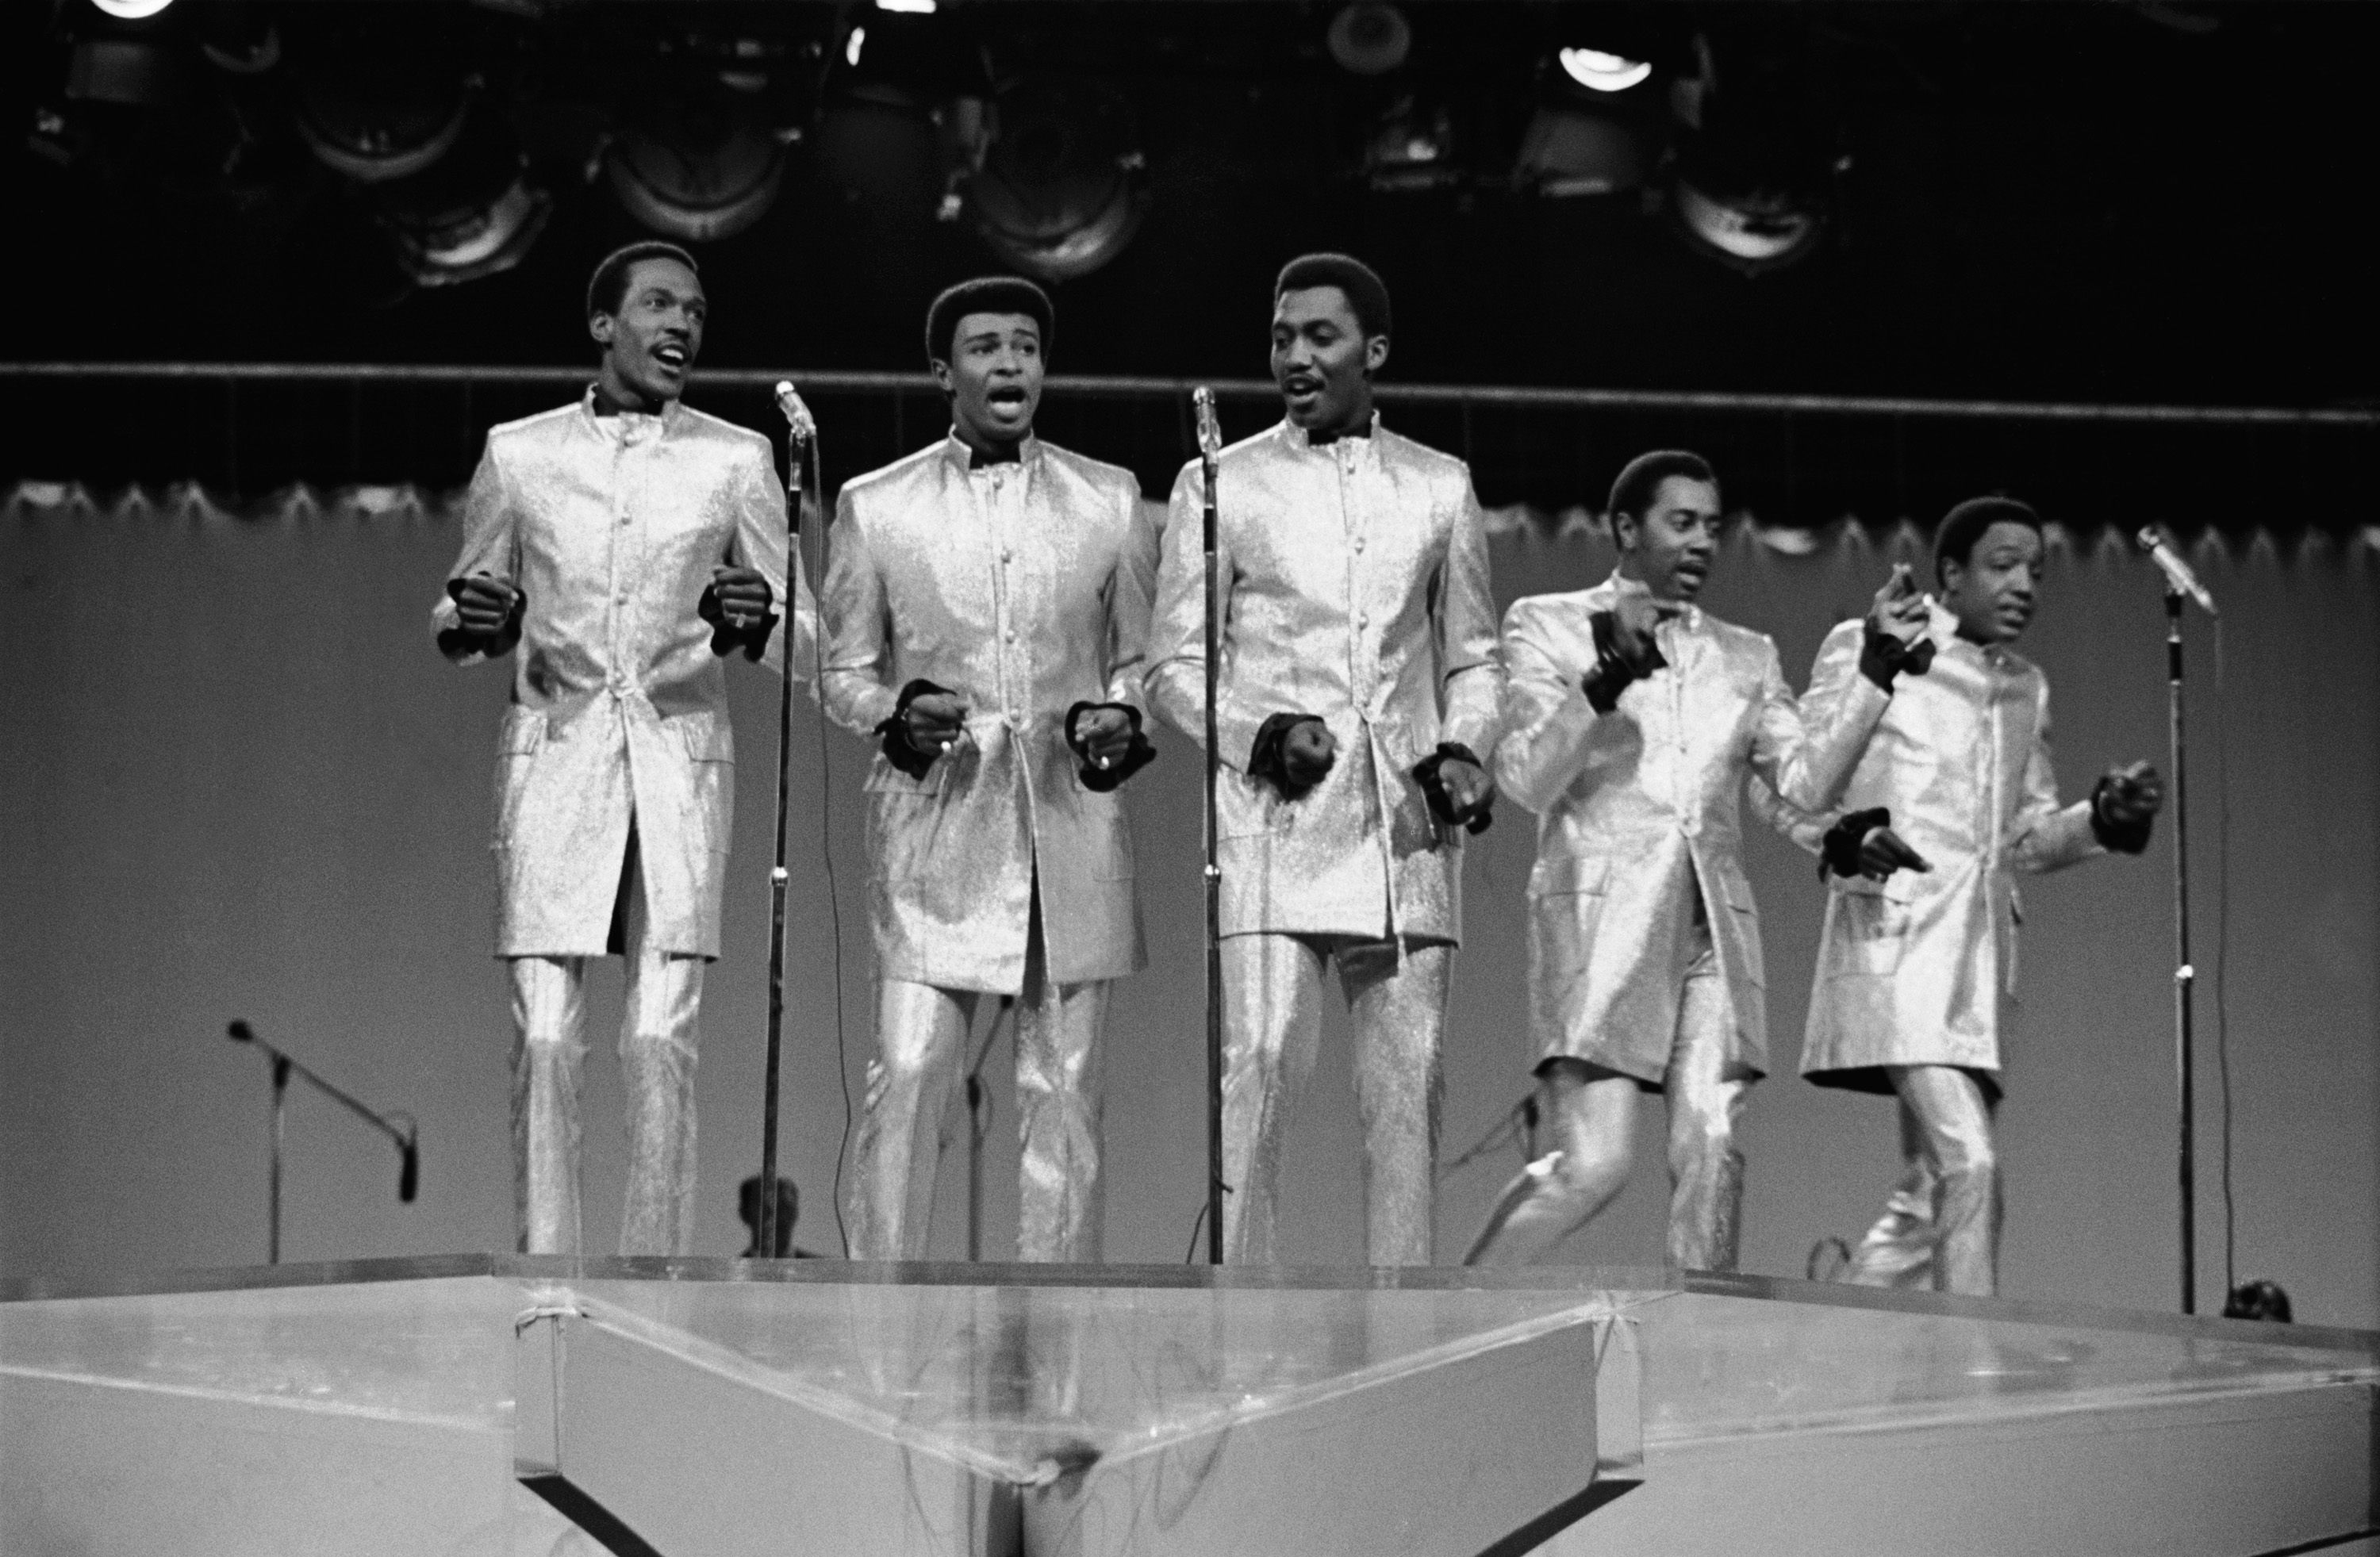 TCB -- Aired 12/9/68 -- Pictured: The Temptations: (l-r) Eddie Kendricks, Dennis Edwards, Otis Williams, Melvin Franklin, Paul Williams (Photo by NBC/NBCU Photo Bank via Getty Images)